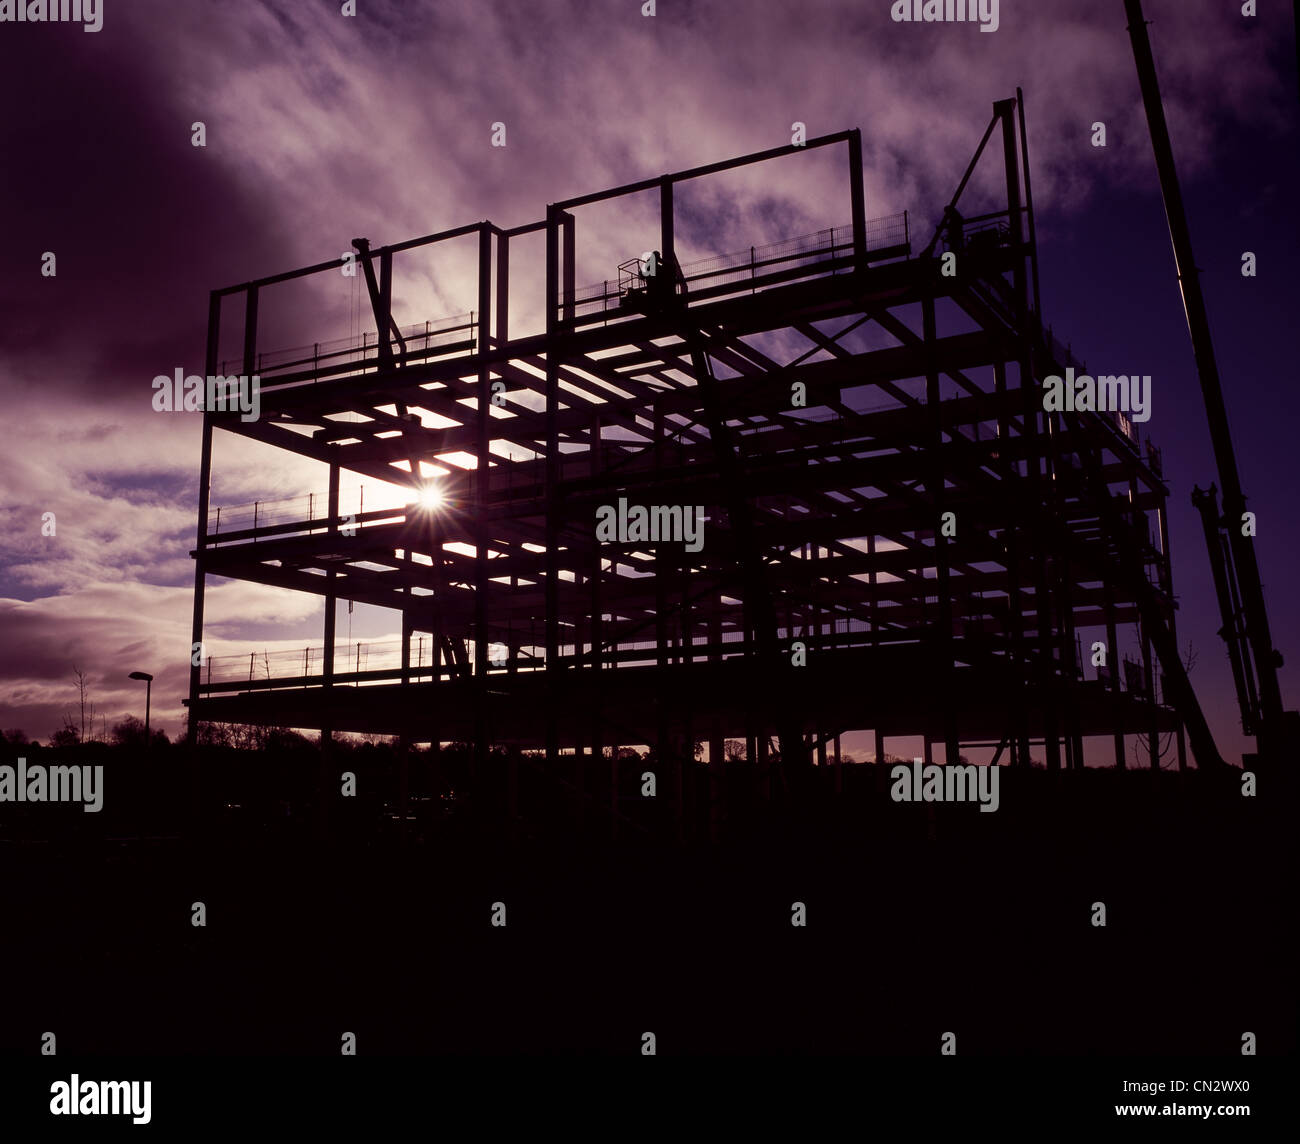 Steel construction framework, Edinburgh, Scotland - Stock Image